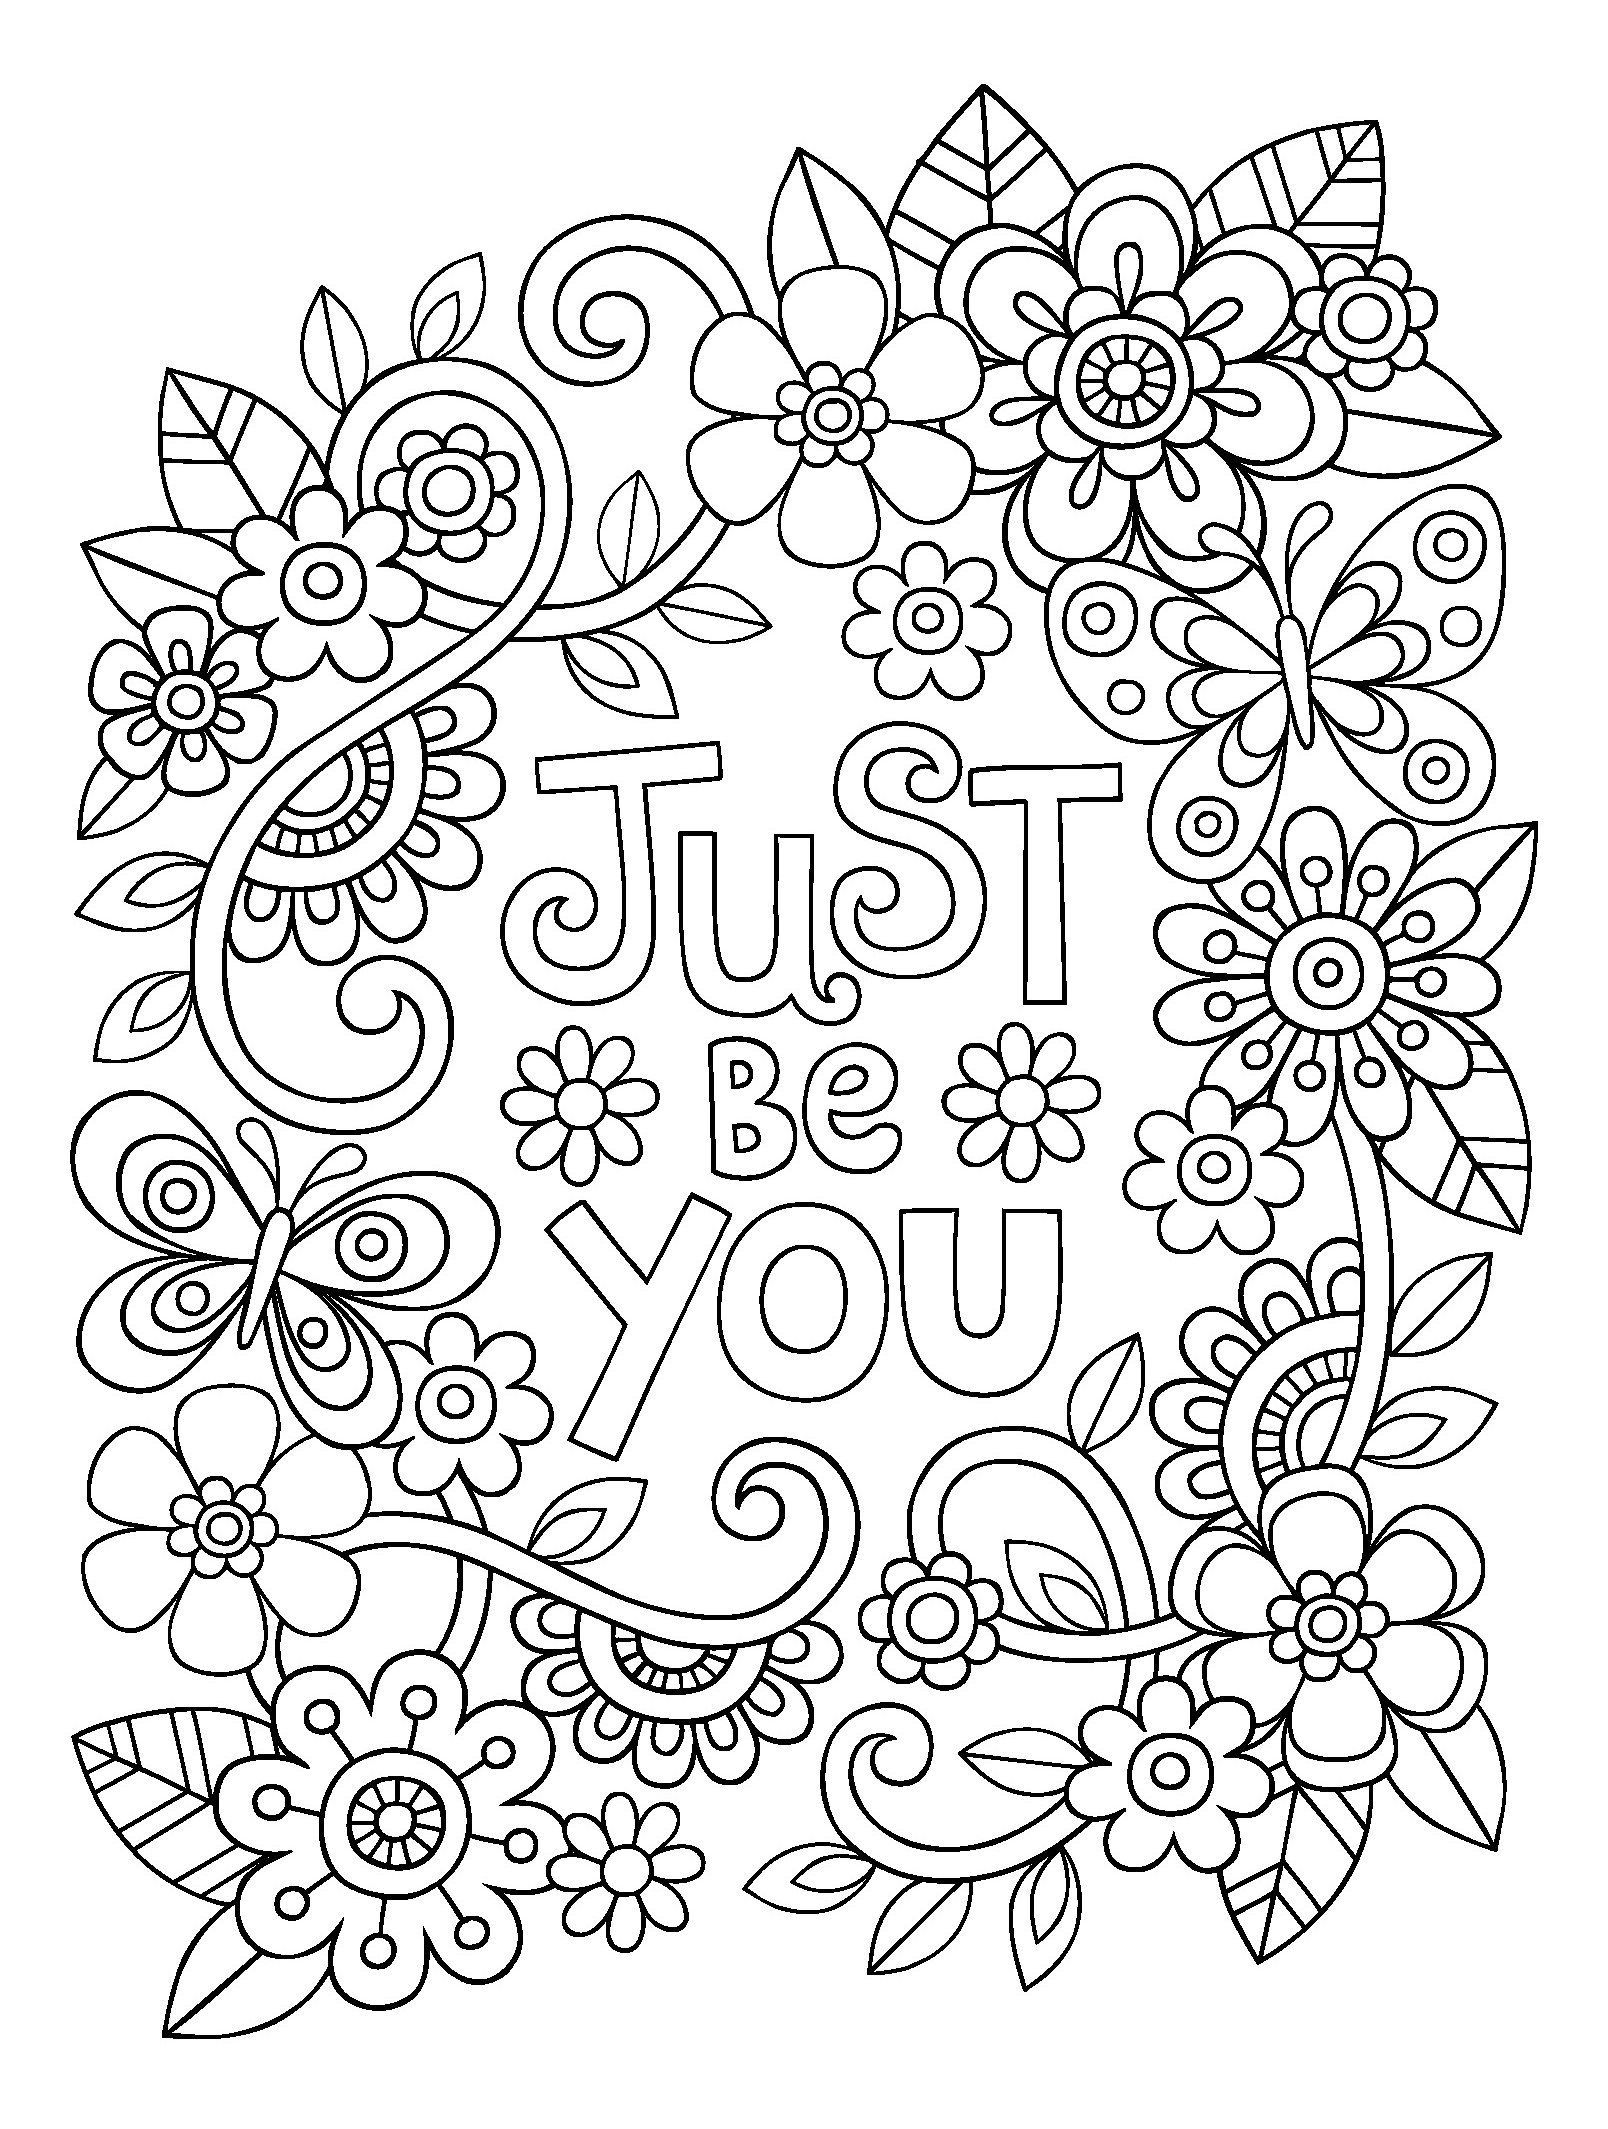 Motivational Coloring Pages Coloring Home